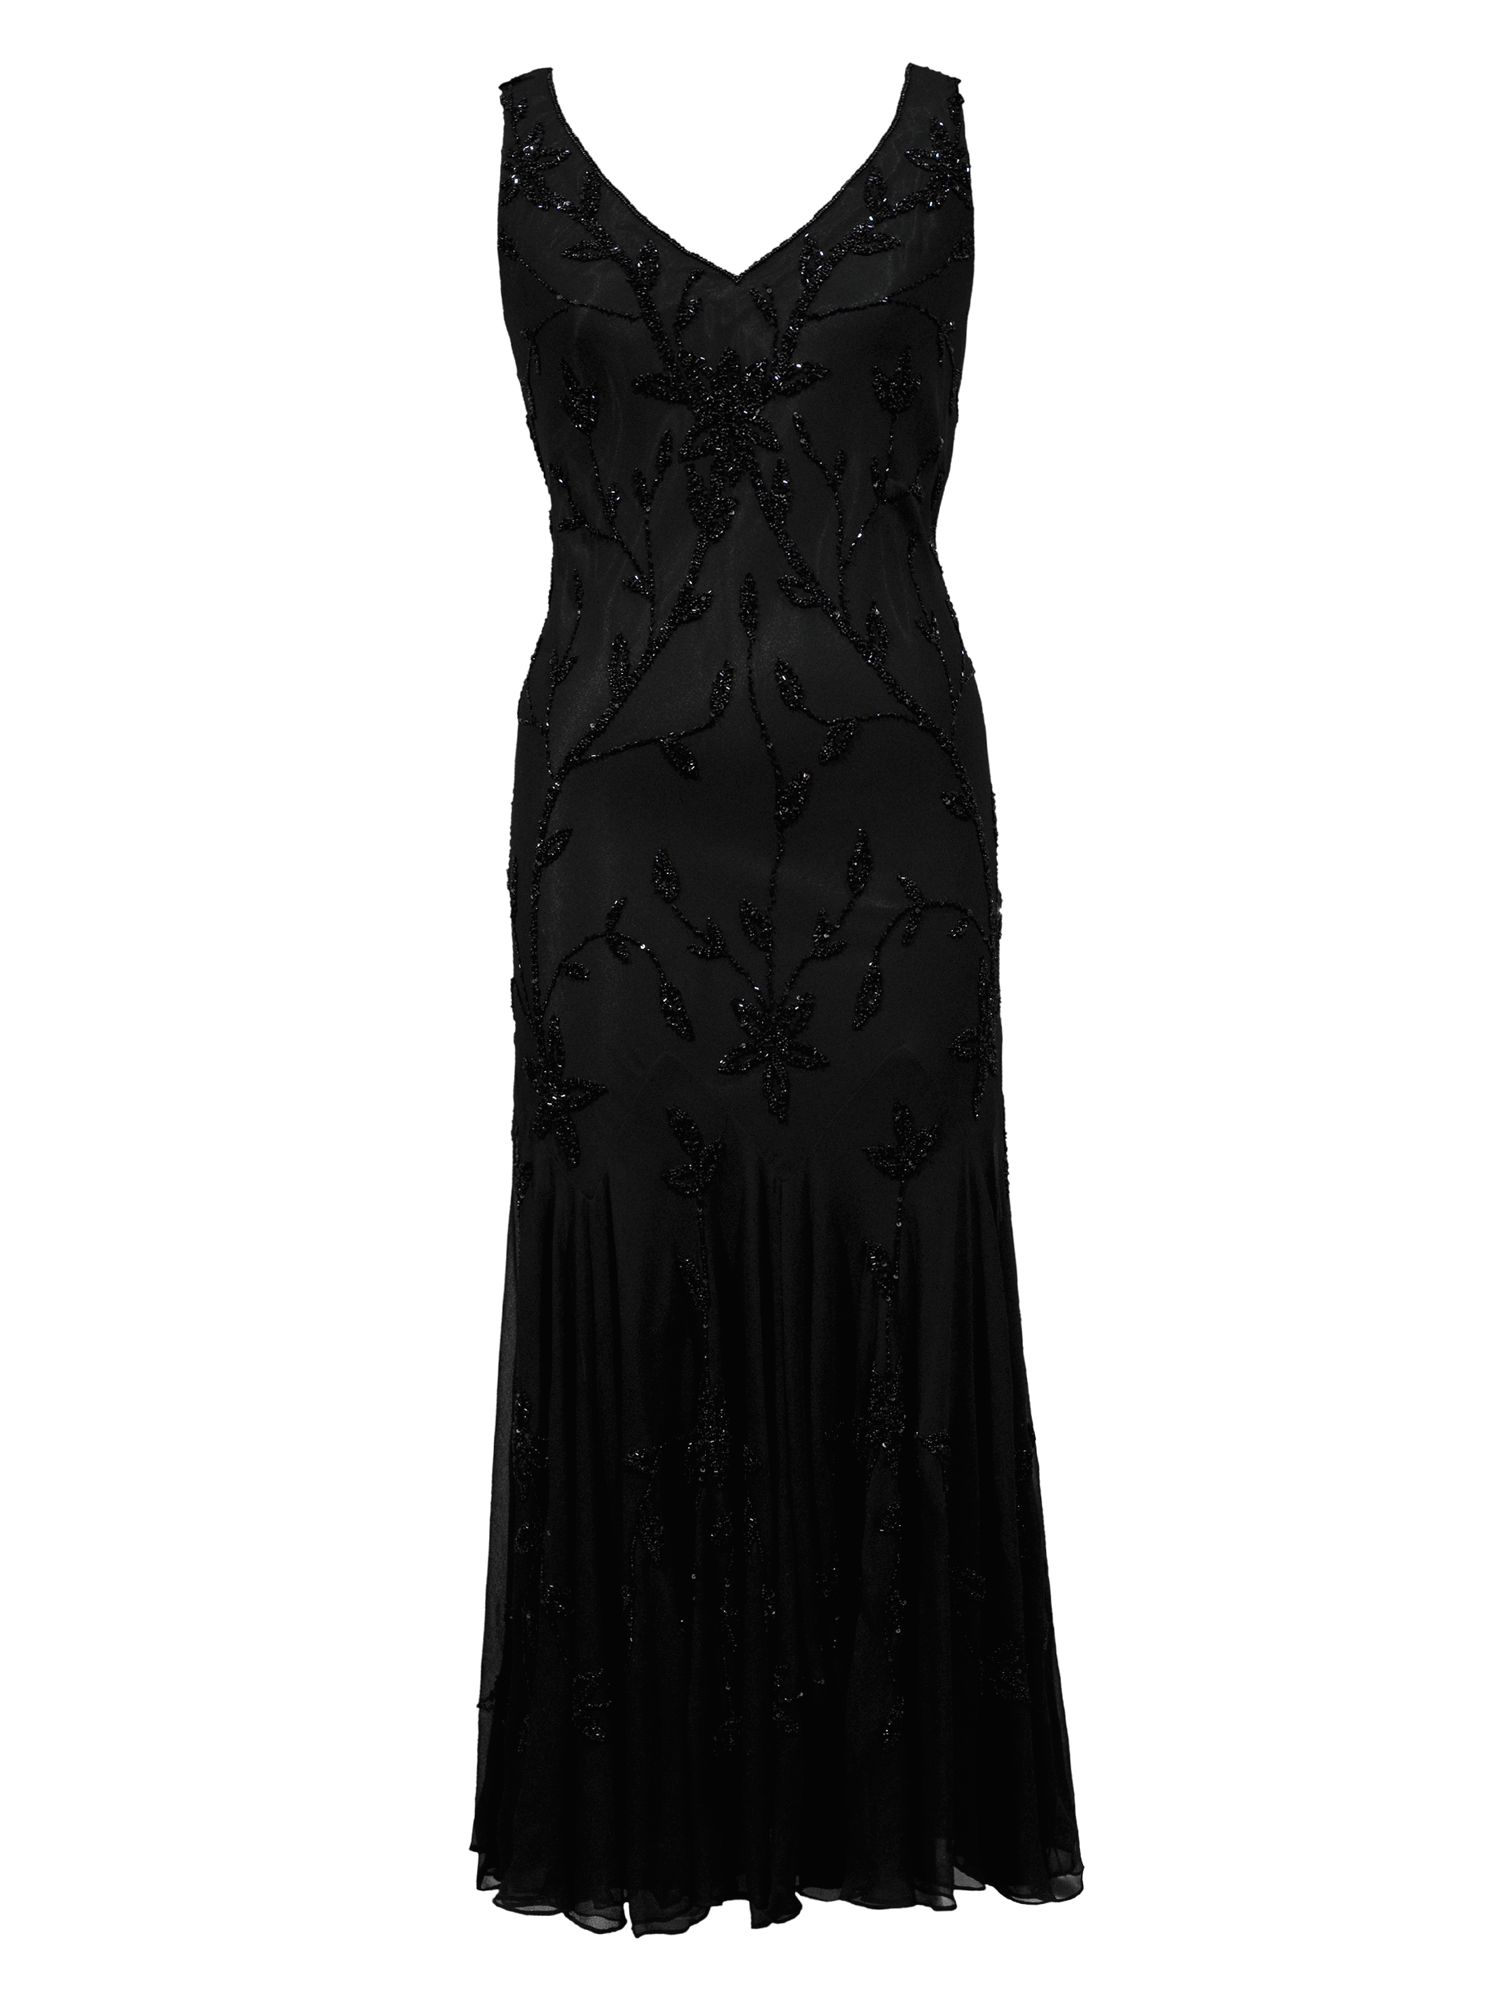 Chesca Black All Over Beaded Dress, Black